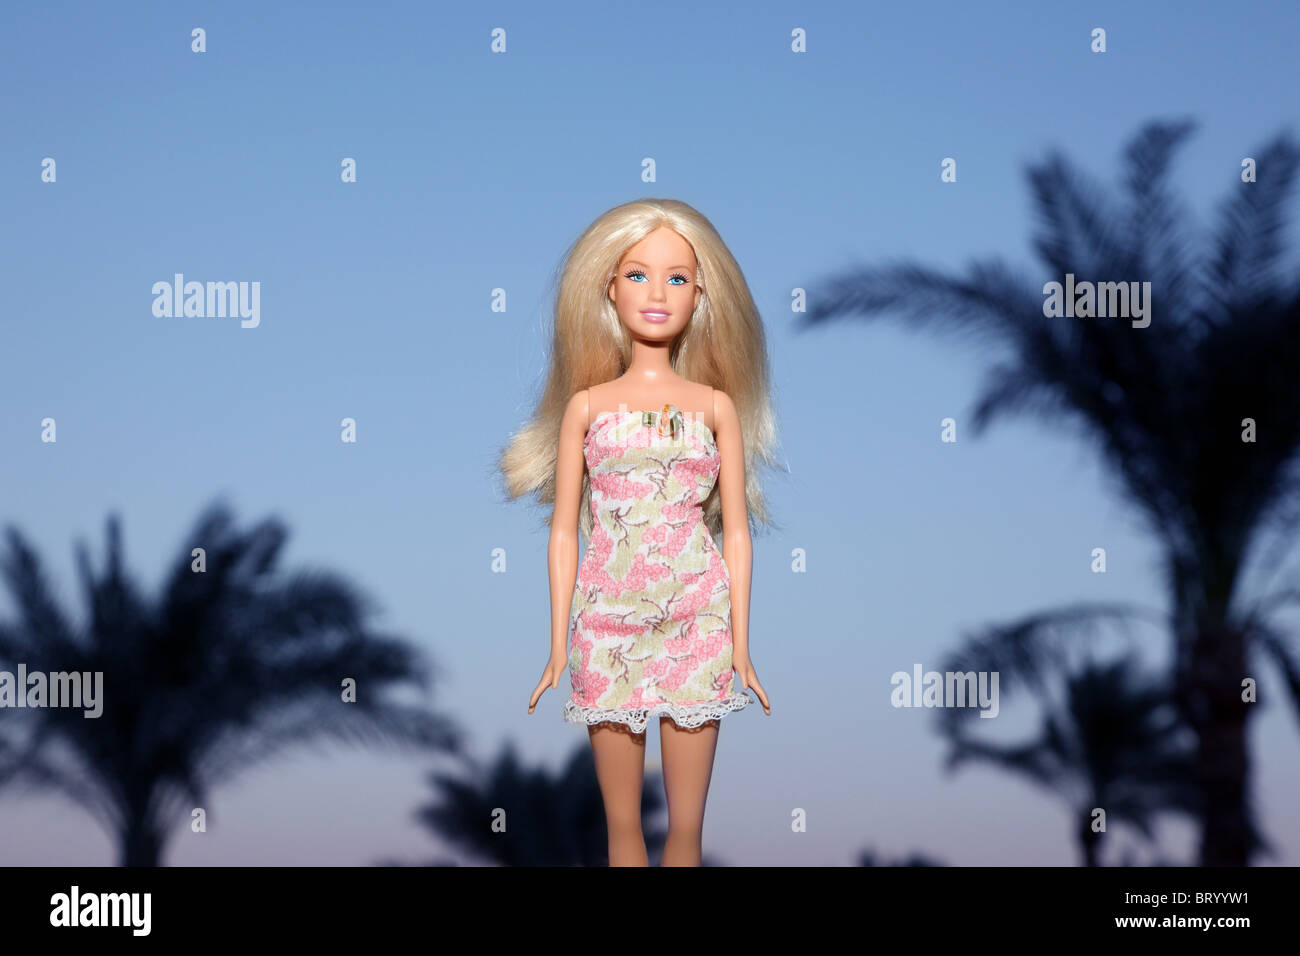 Barbie doll standing in front of Palm trees - Stock Image